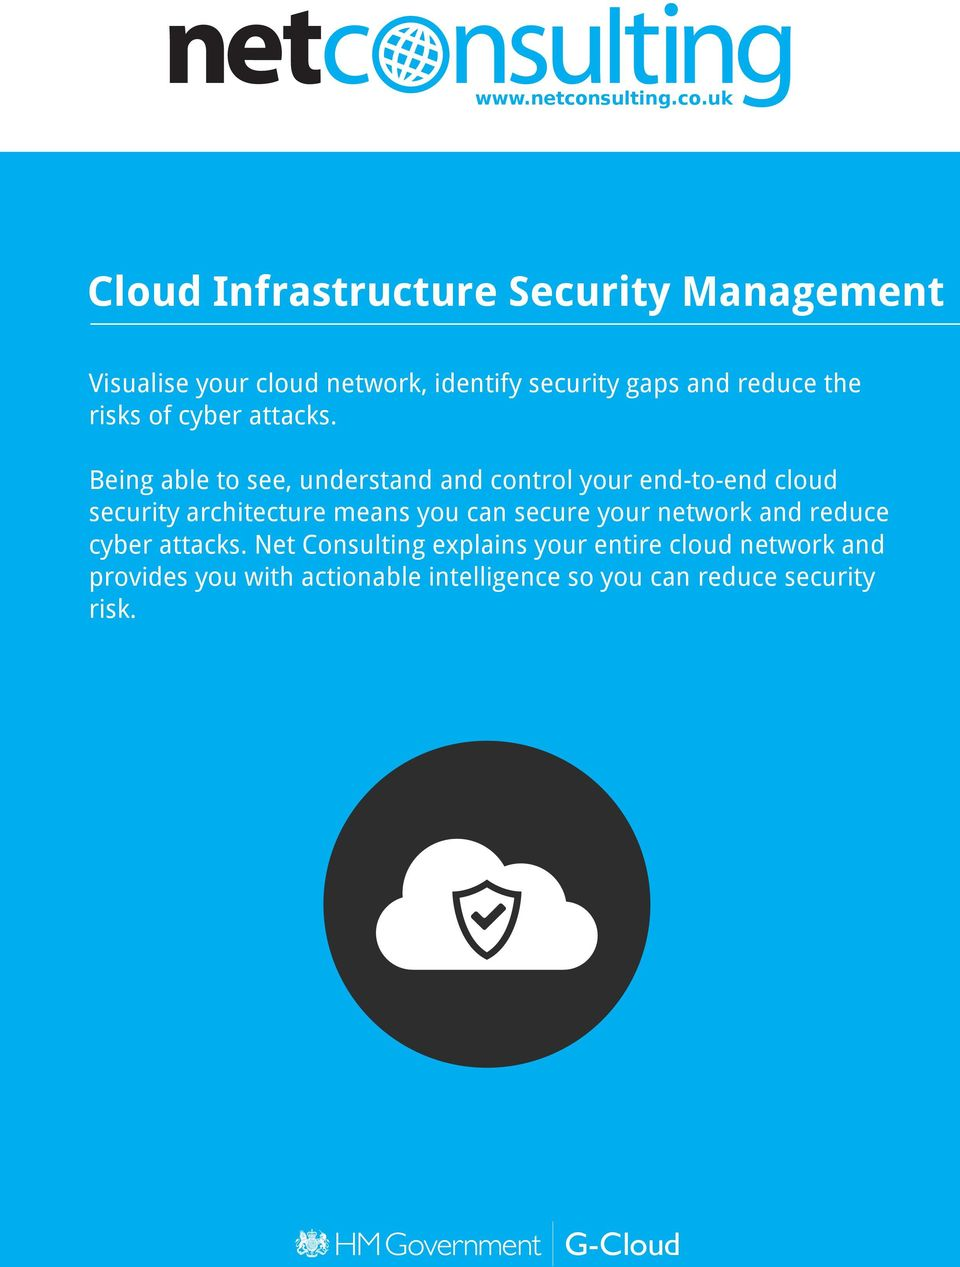 uk Cloud Infrastructure Security Management Visualise your cloud network, identify security gaps and reduce